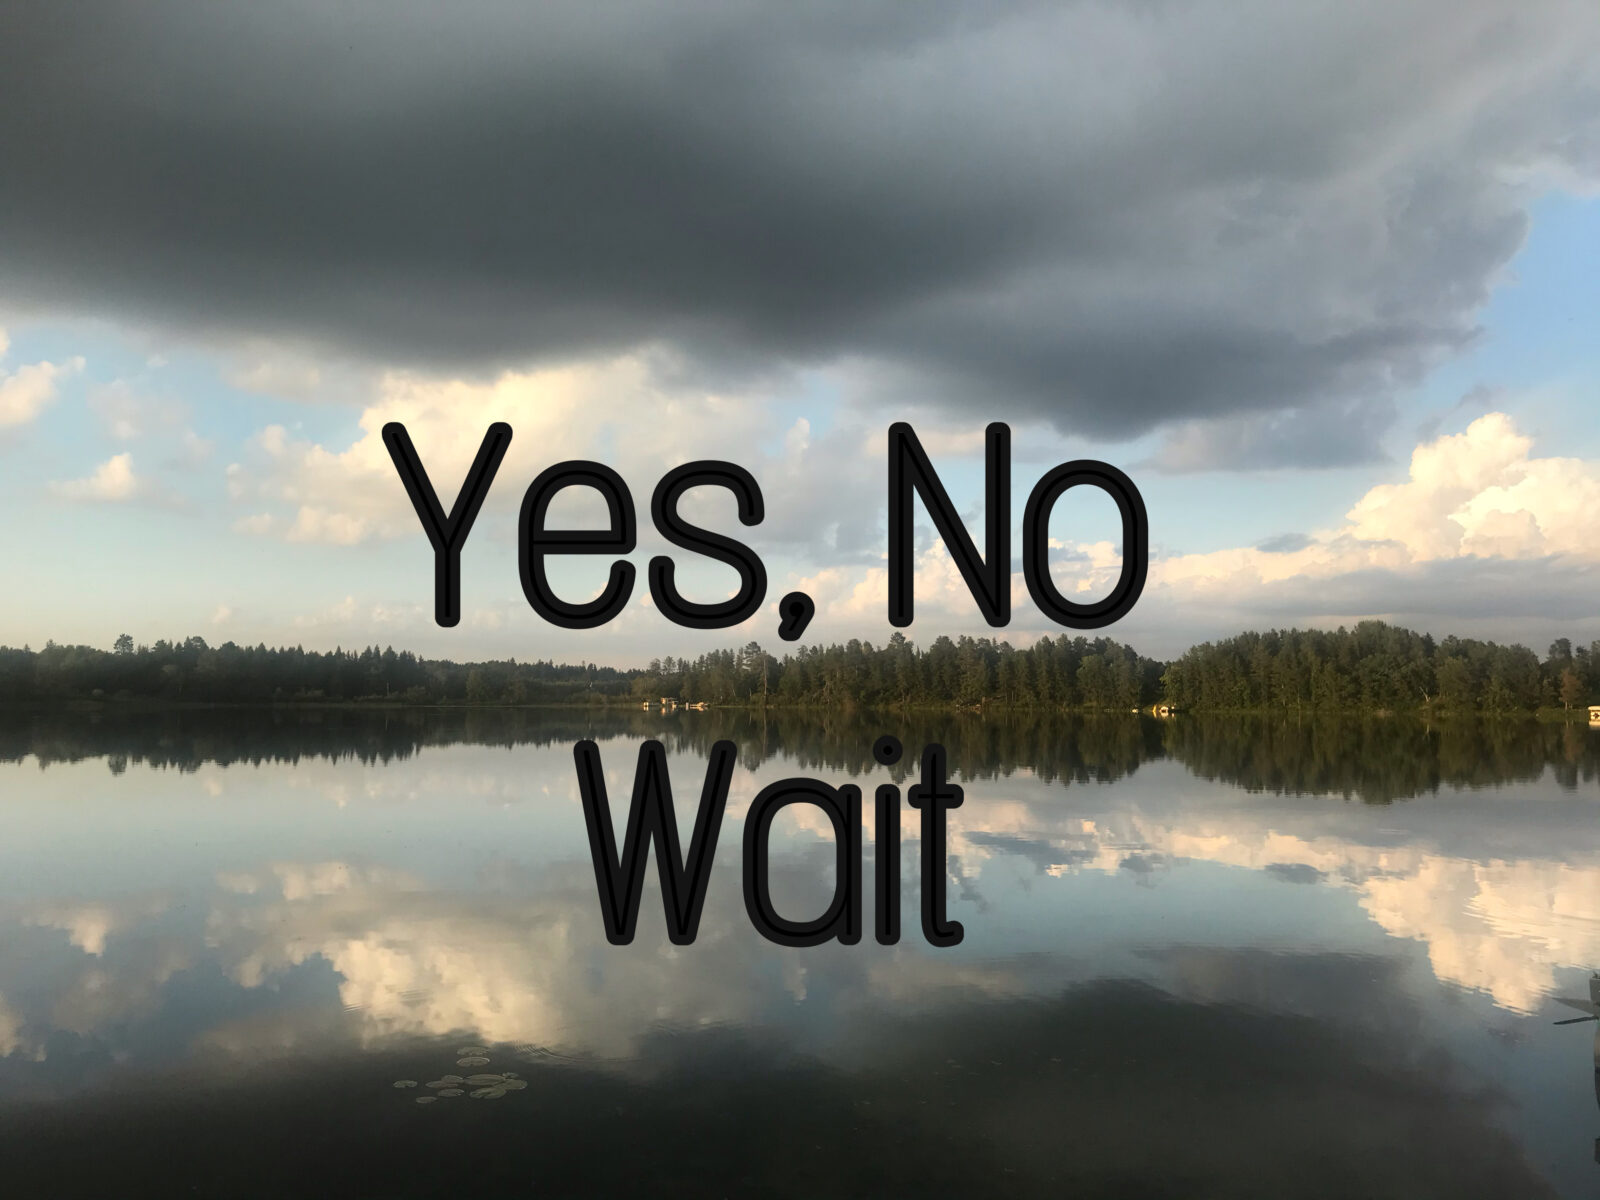 Yes no wait